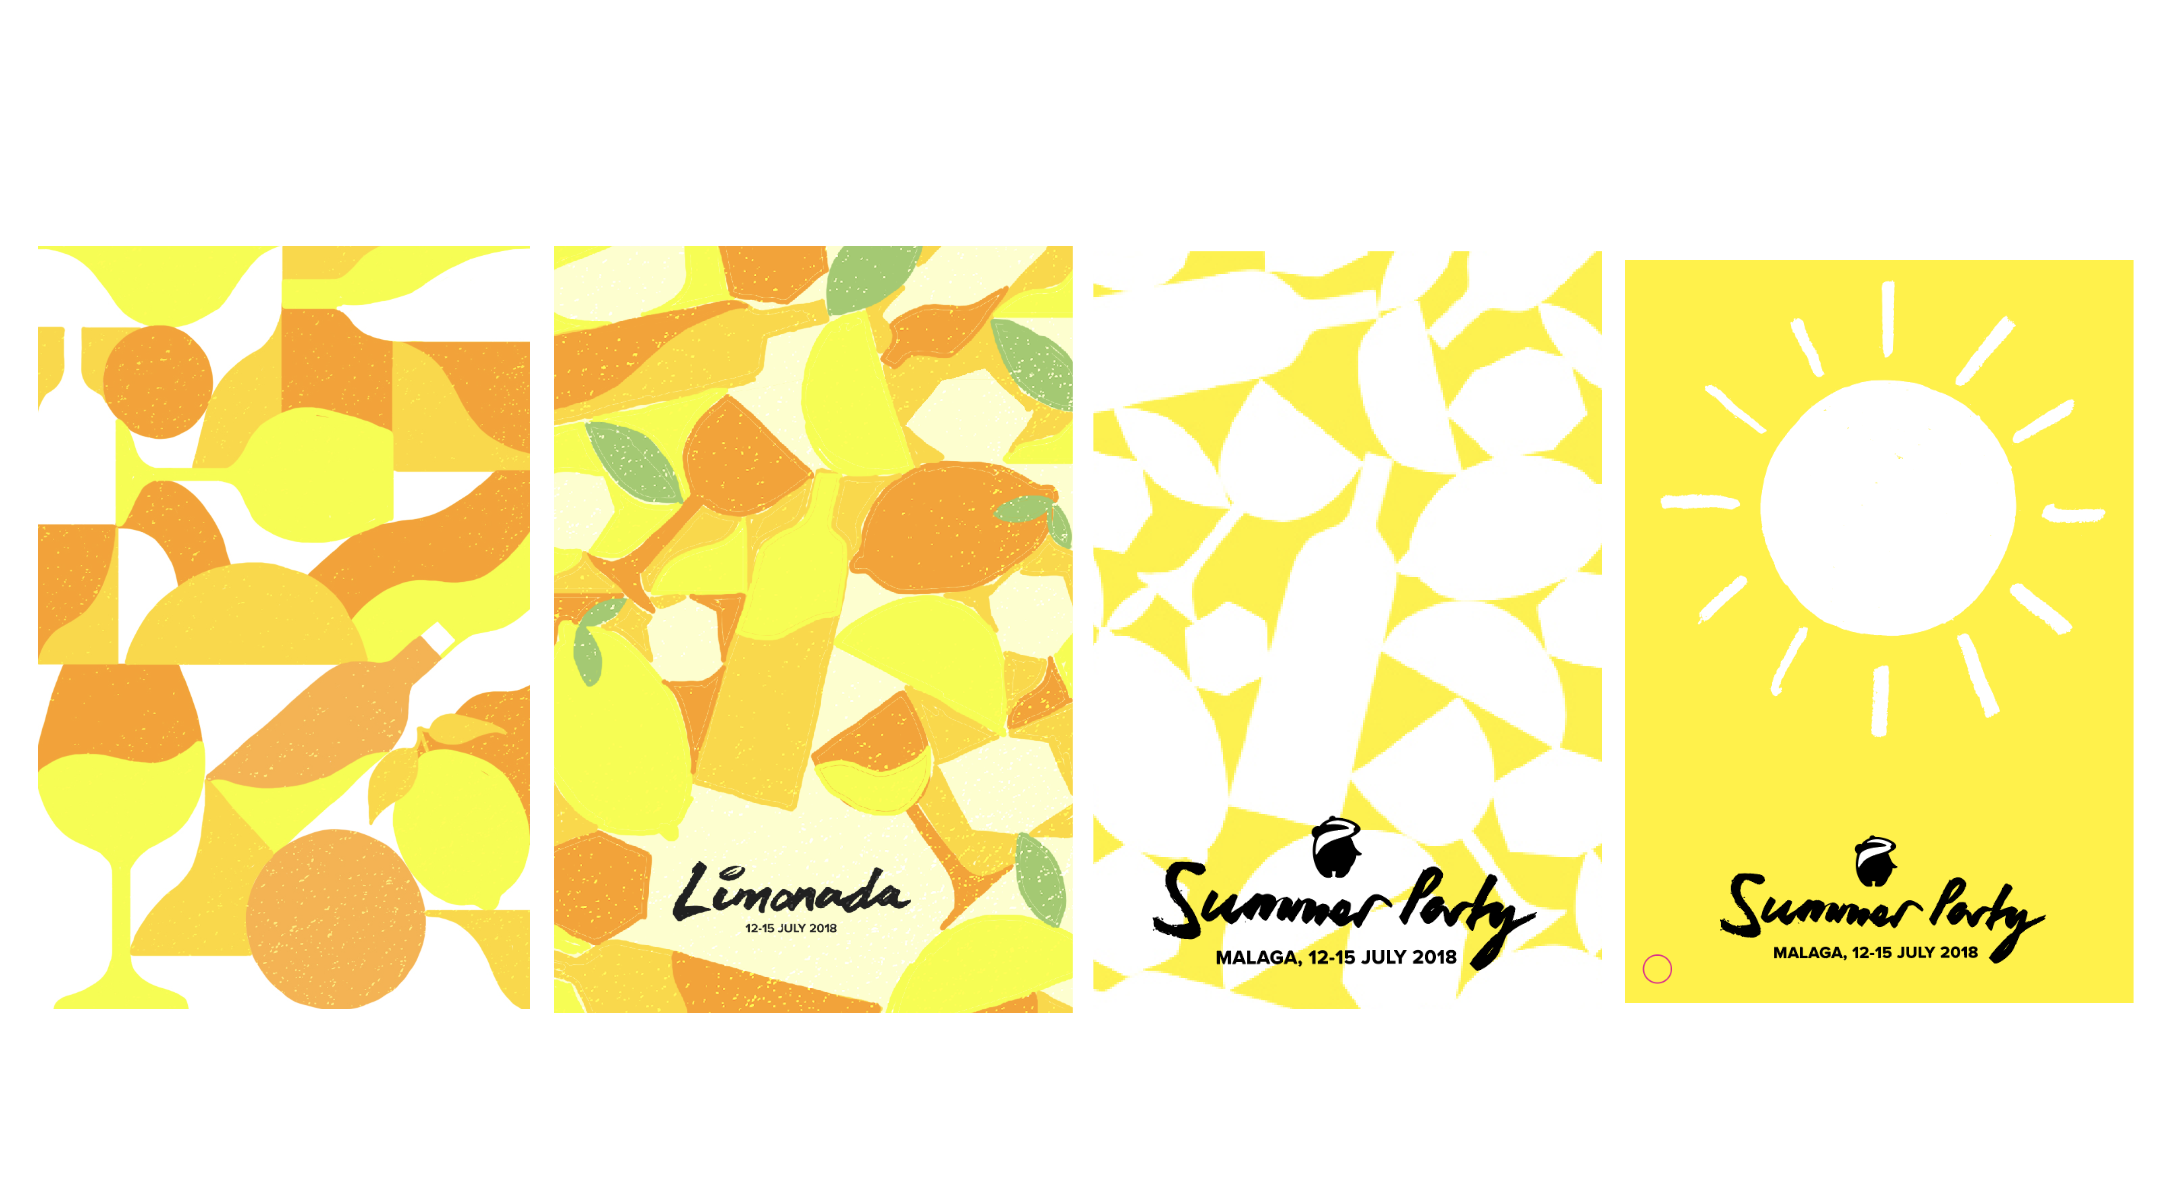 4 slightly different drafts of the initial theme post from lemons and oranges right through to a beaming sun